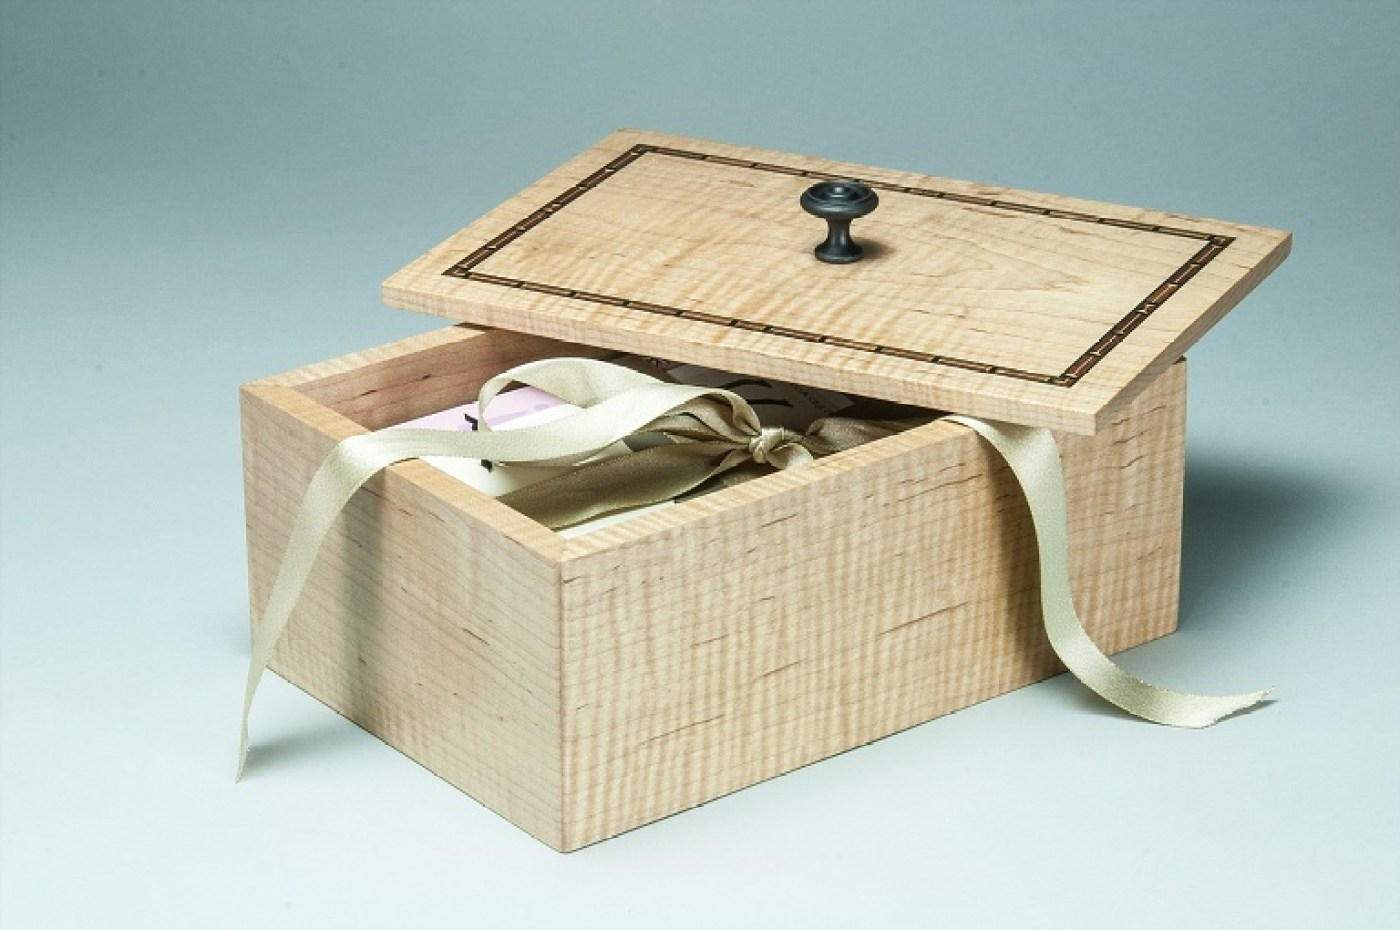 inlaid maple keepsake box for cards and momentos | Heller and Heller Furniture